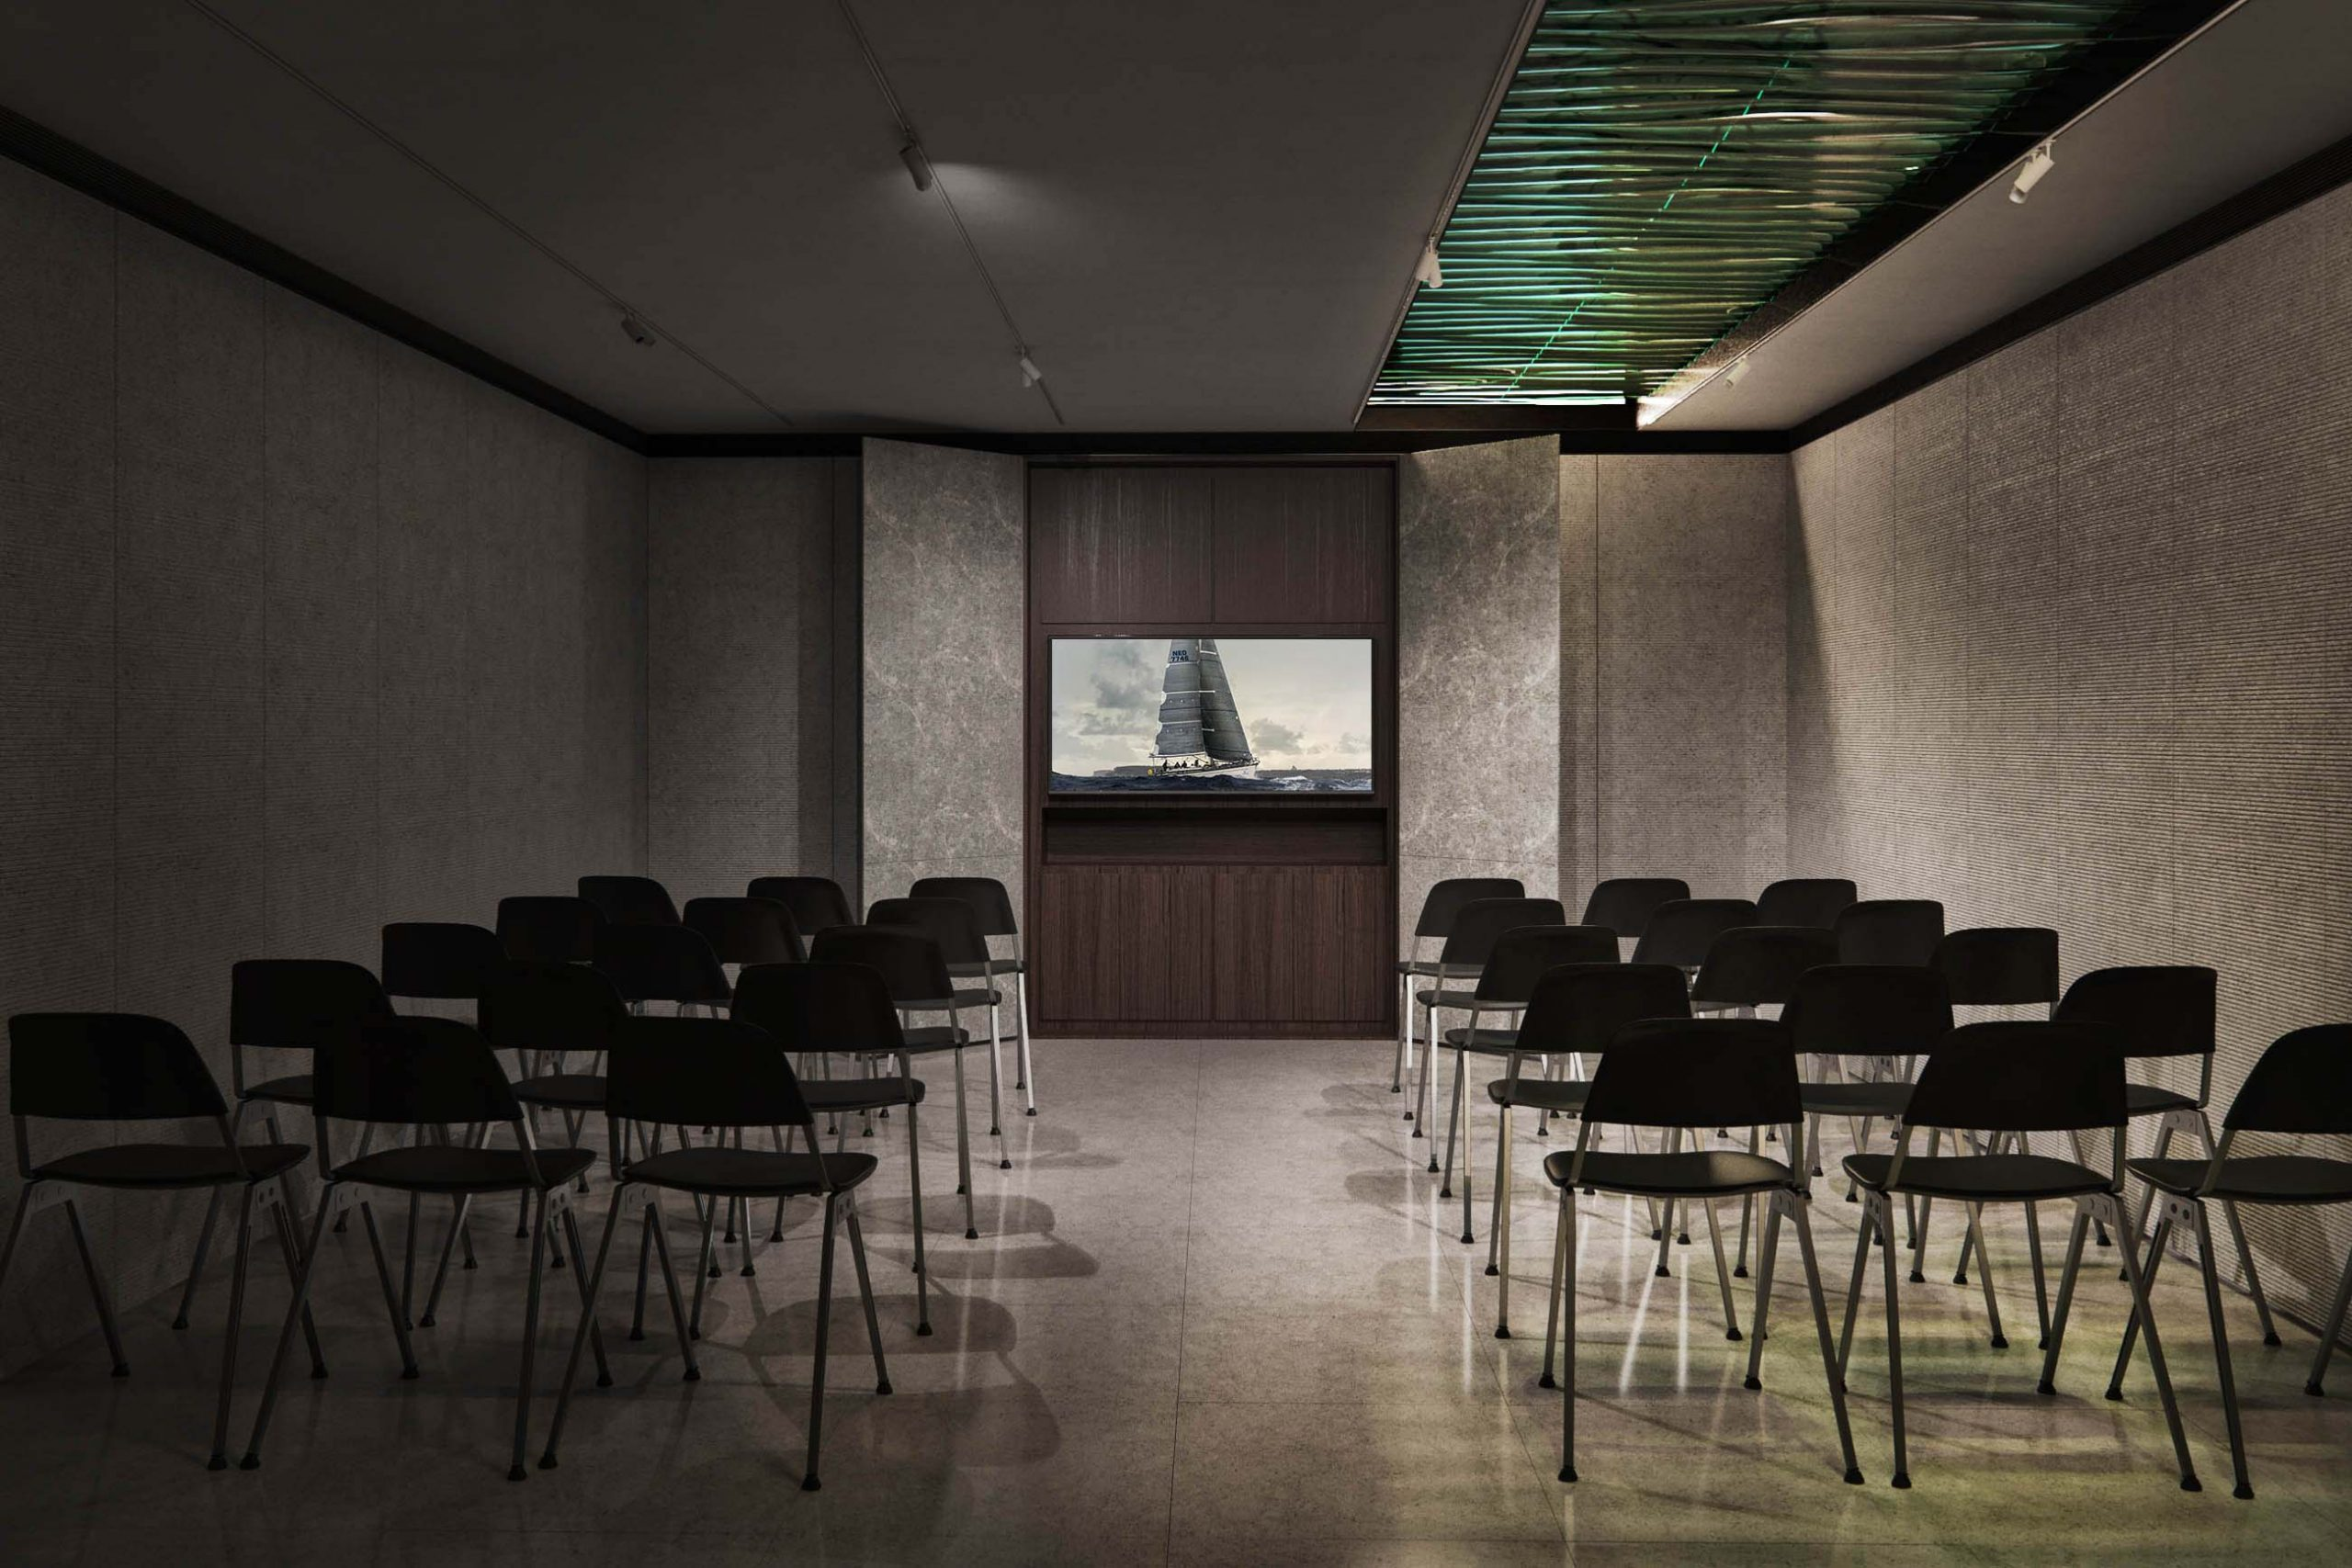 https://dprostudio.com/wp-content/uploads/2020/11/Lecture-Room-scaled.jpg